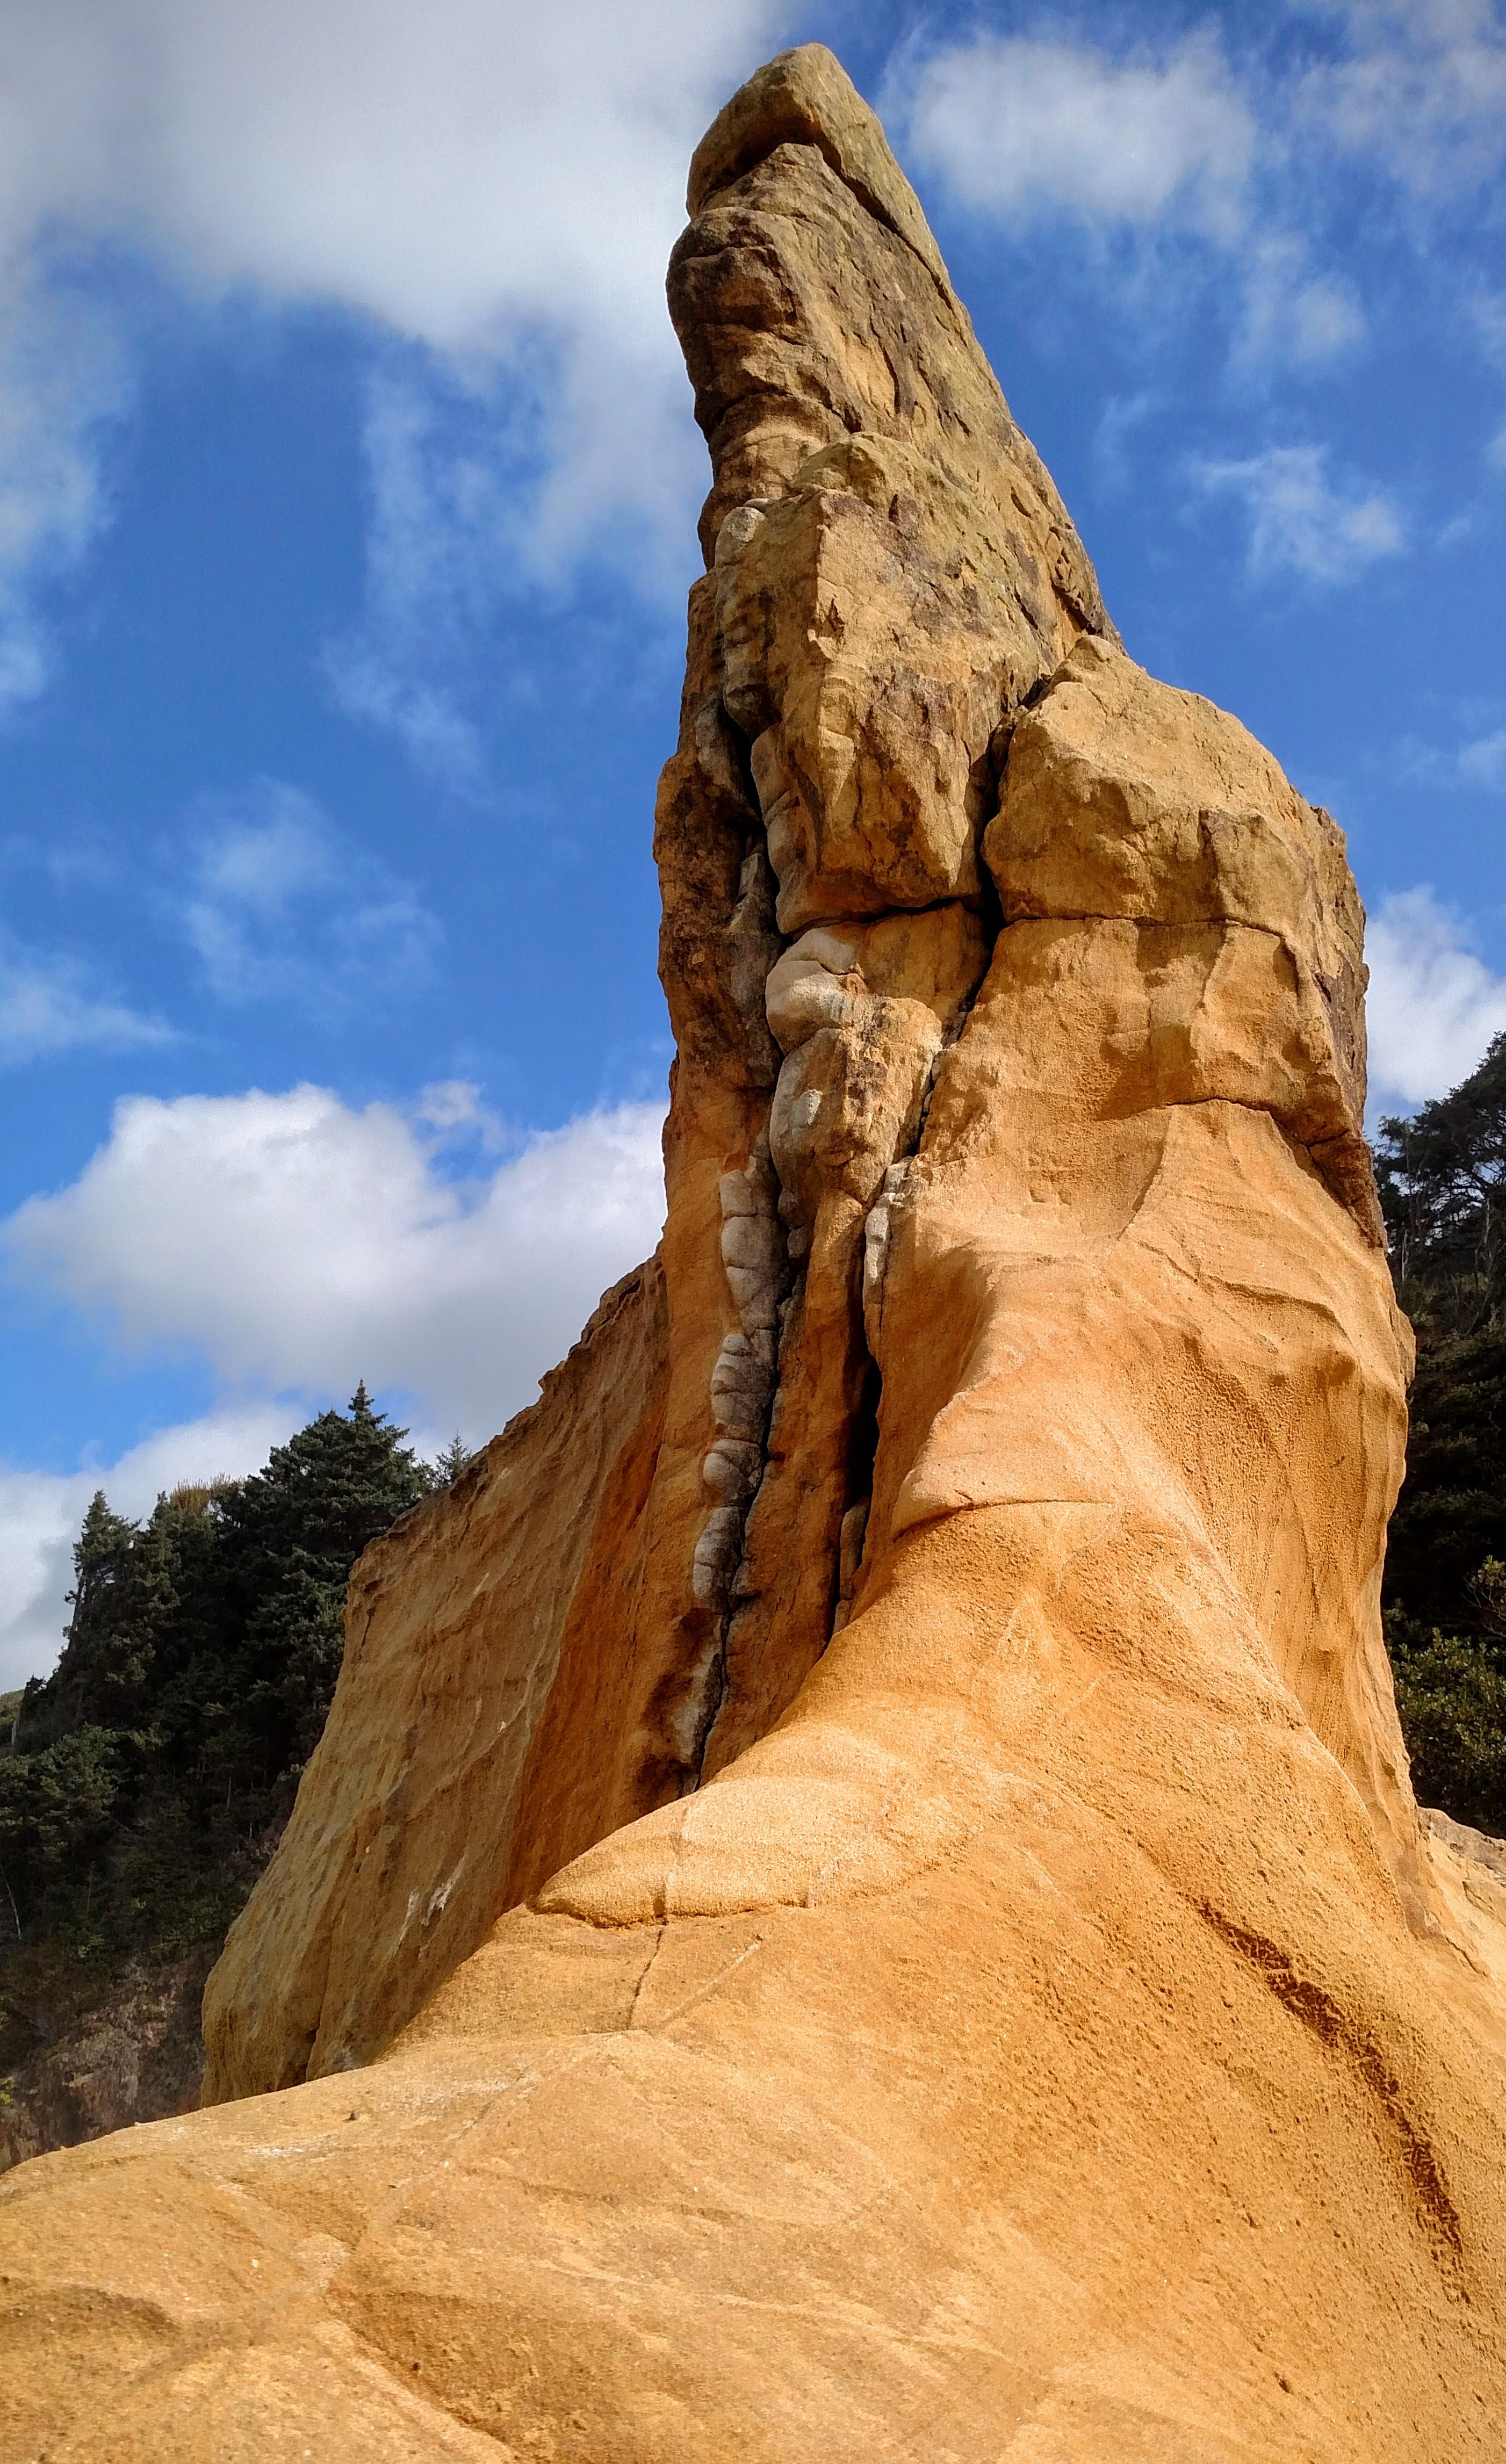 Sea-sculpted Sandstone